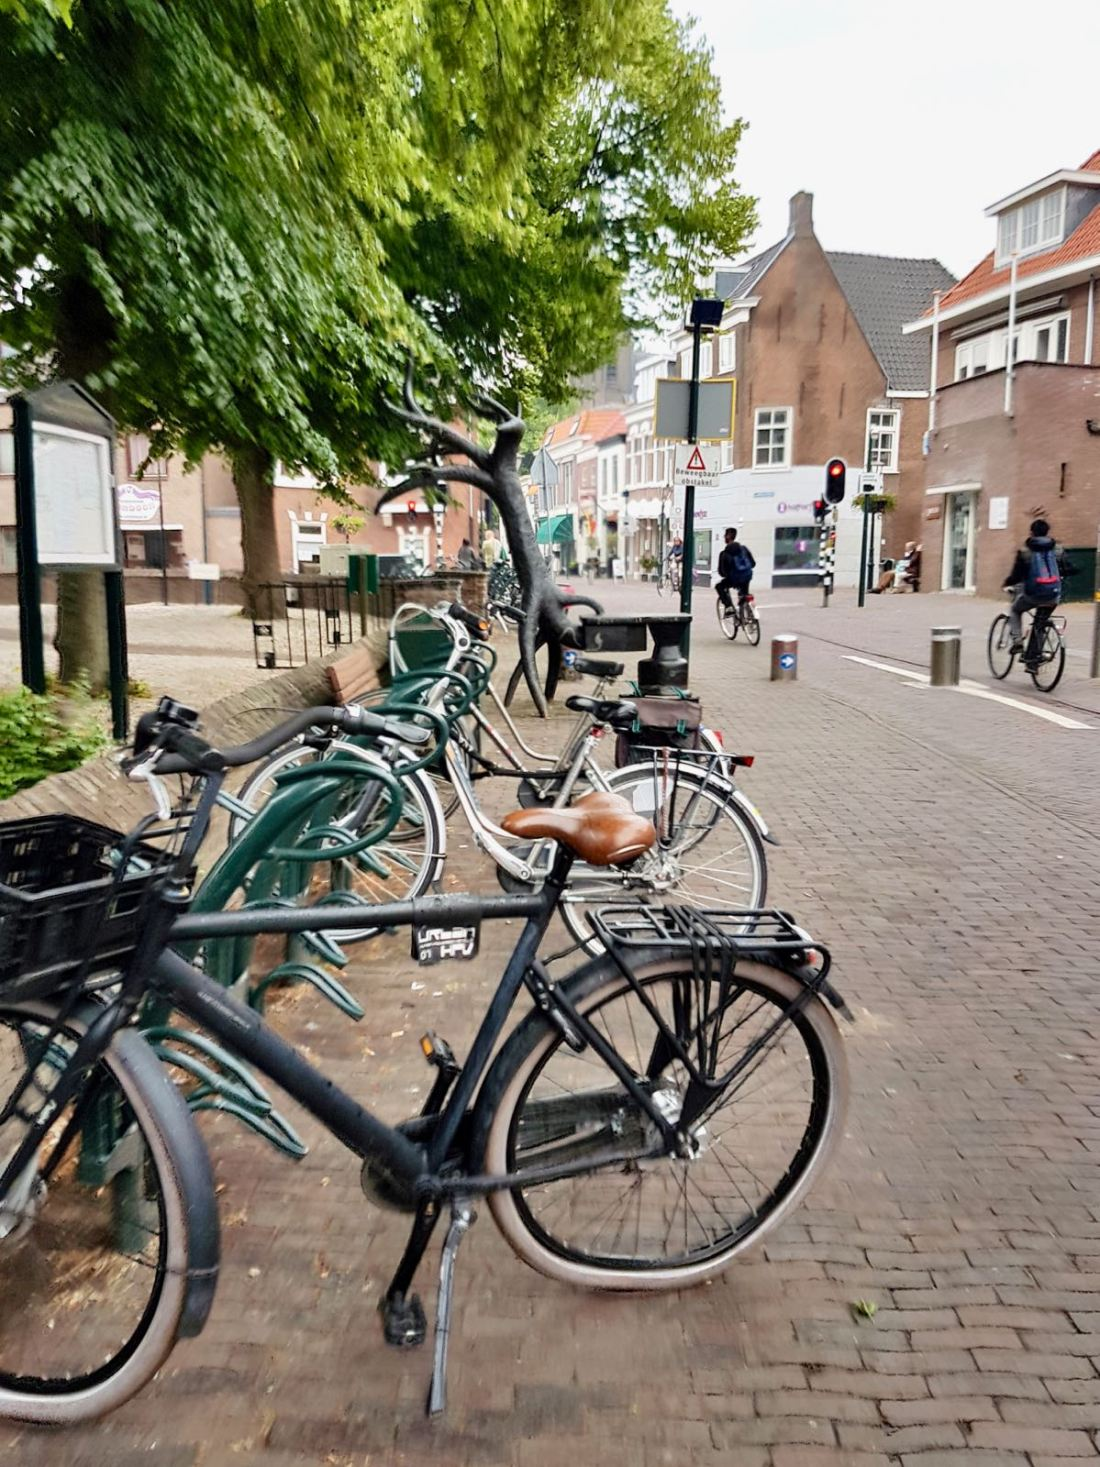 Bikes parked up on Dorpstraat